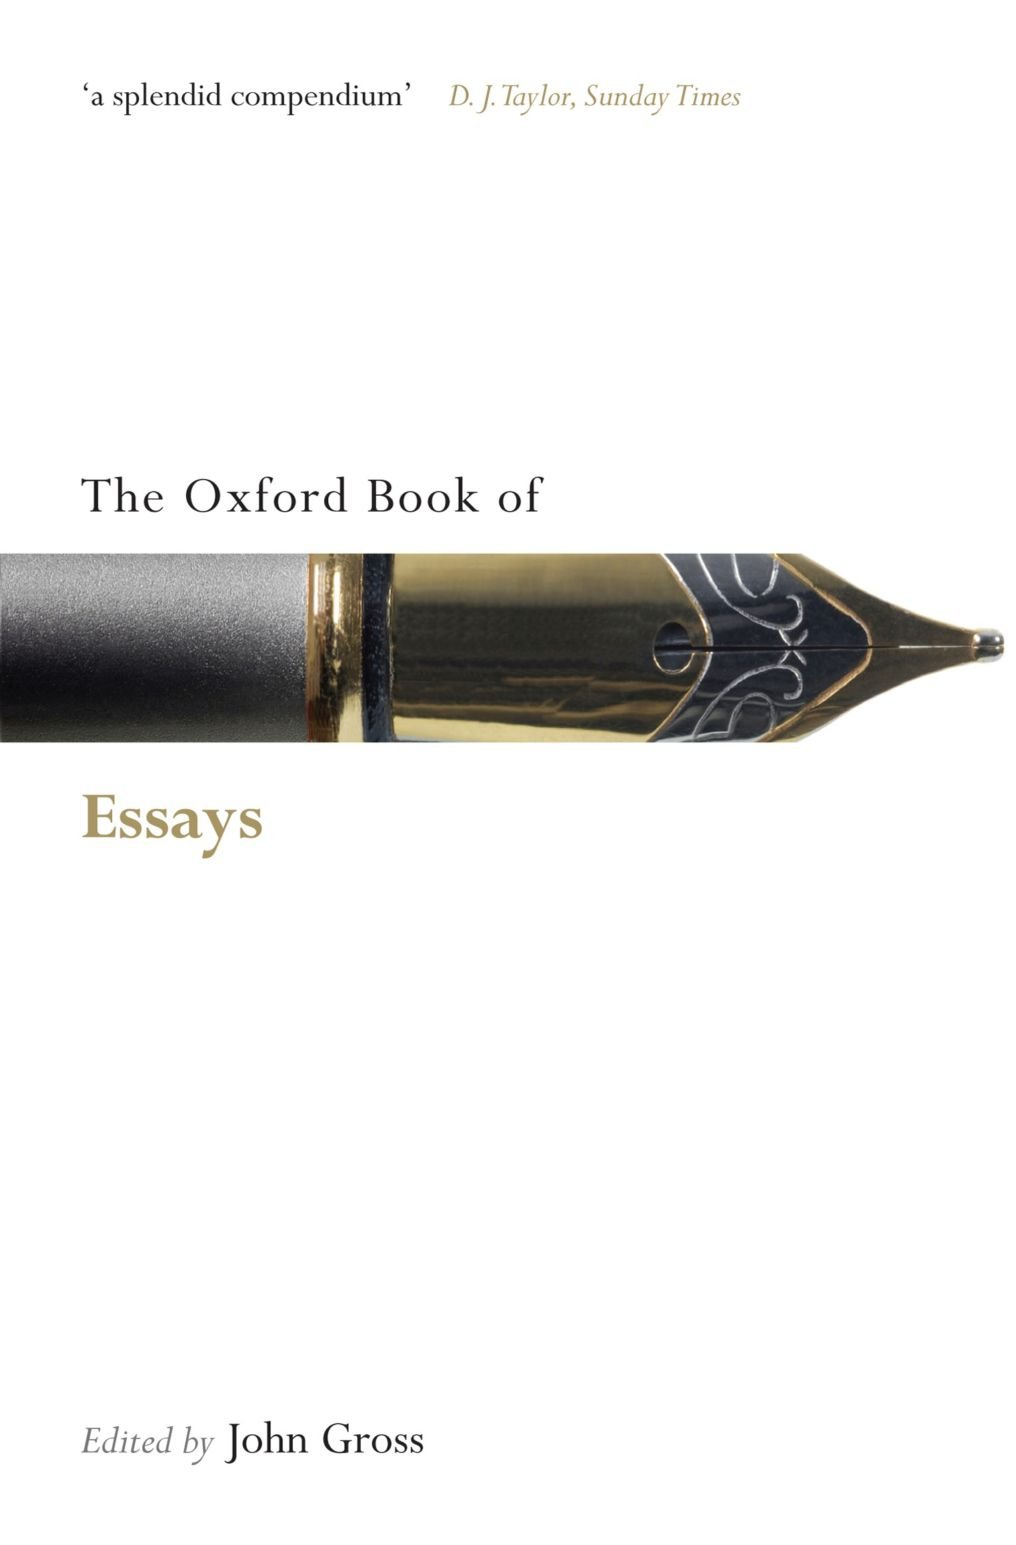 the oxford book of essays oxford books of prose verse amazon the oxford book of essays oxford books of prose verse amazon co uk john gross 9780199556557 books